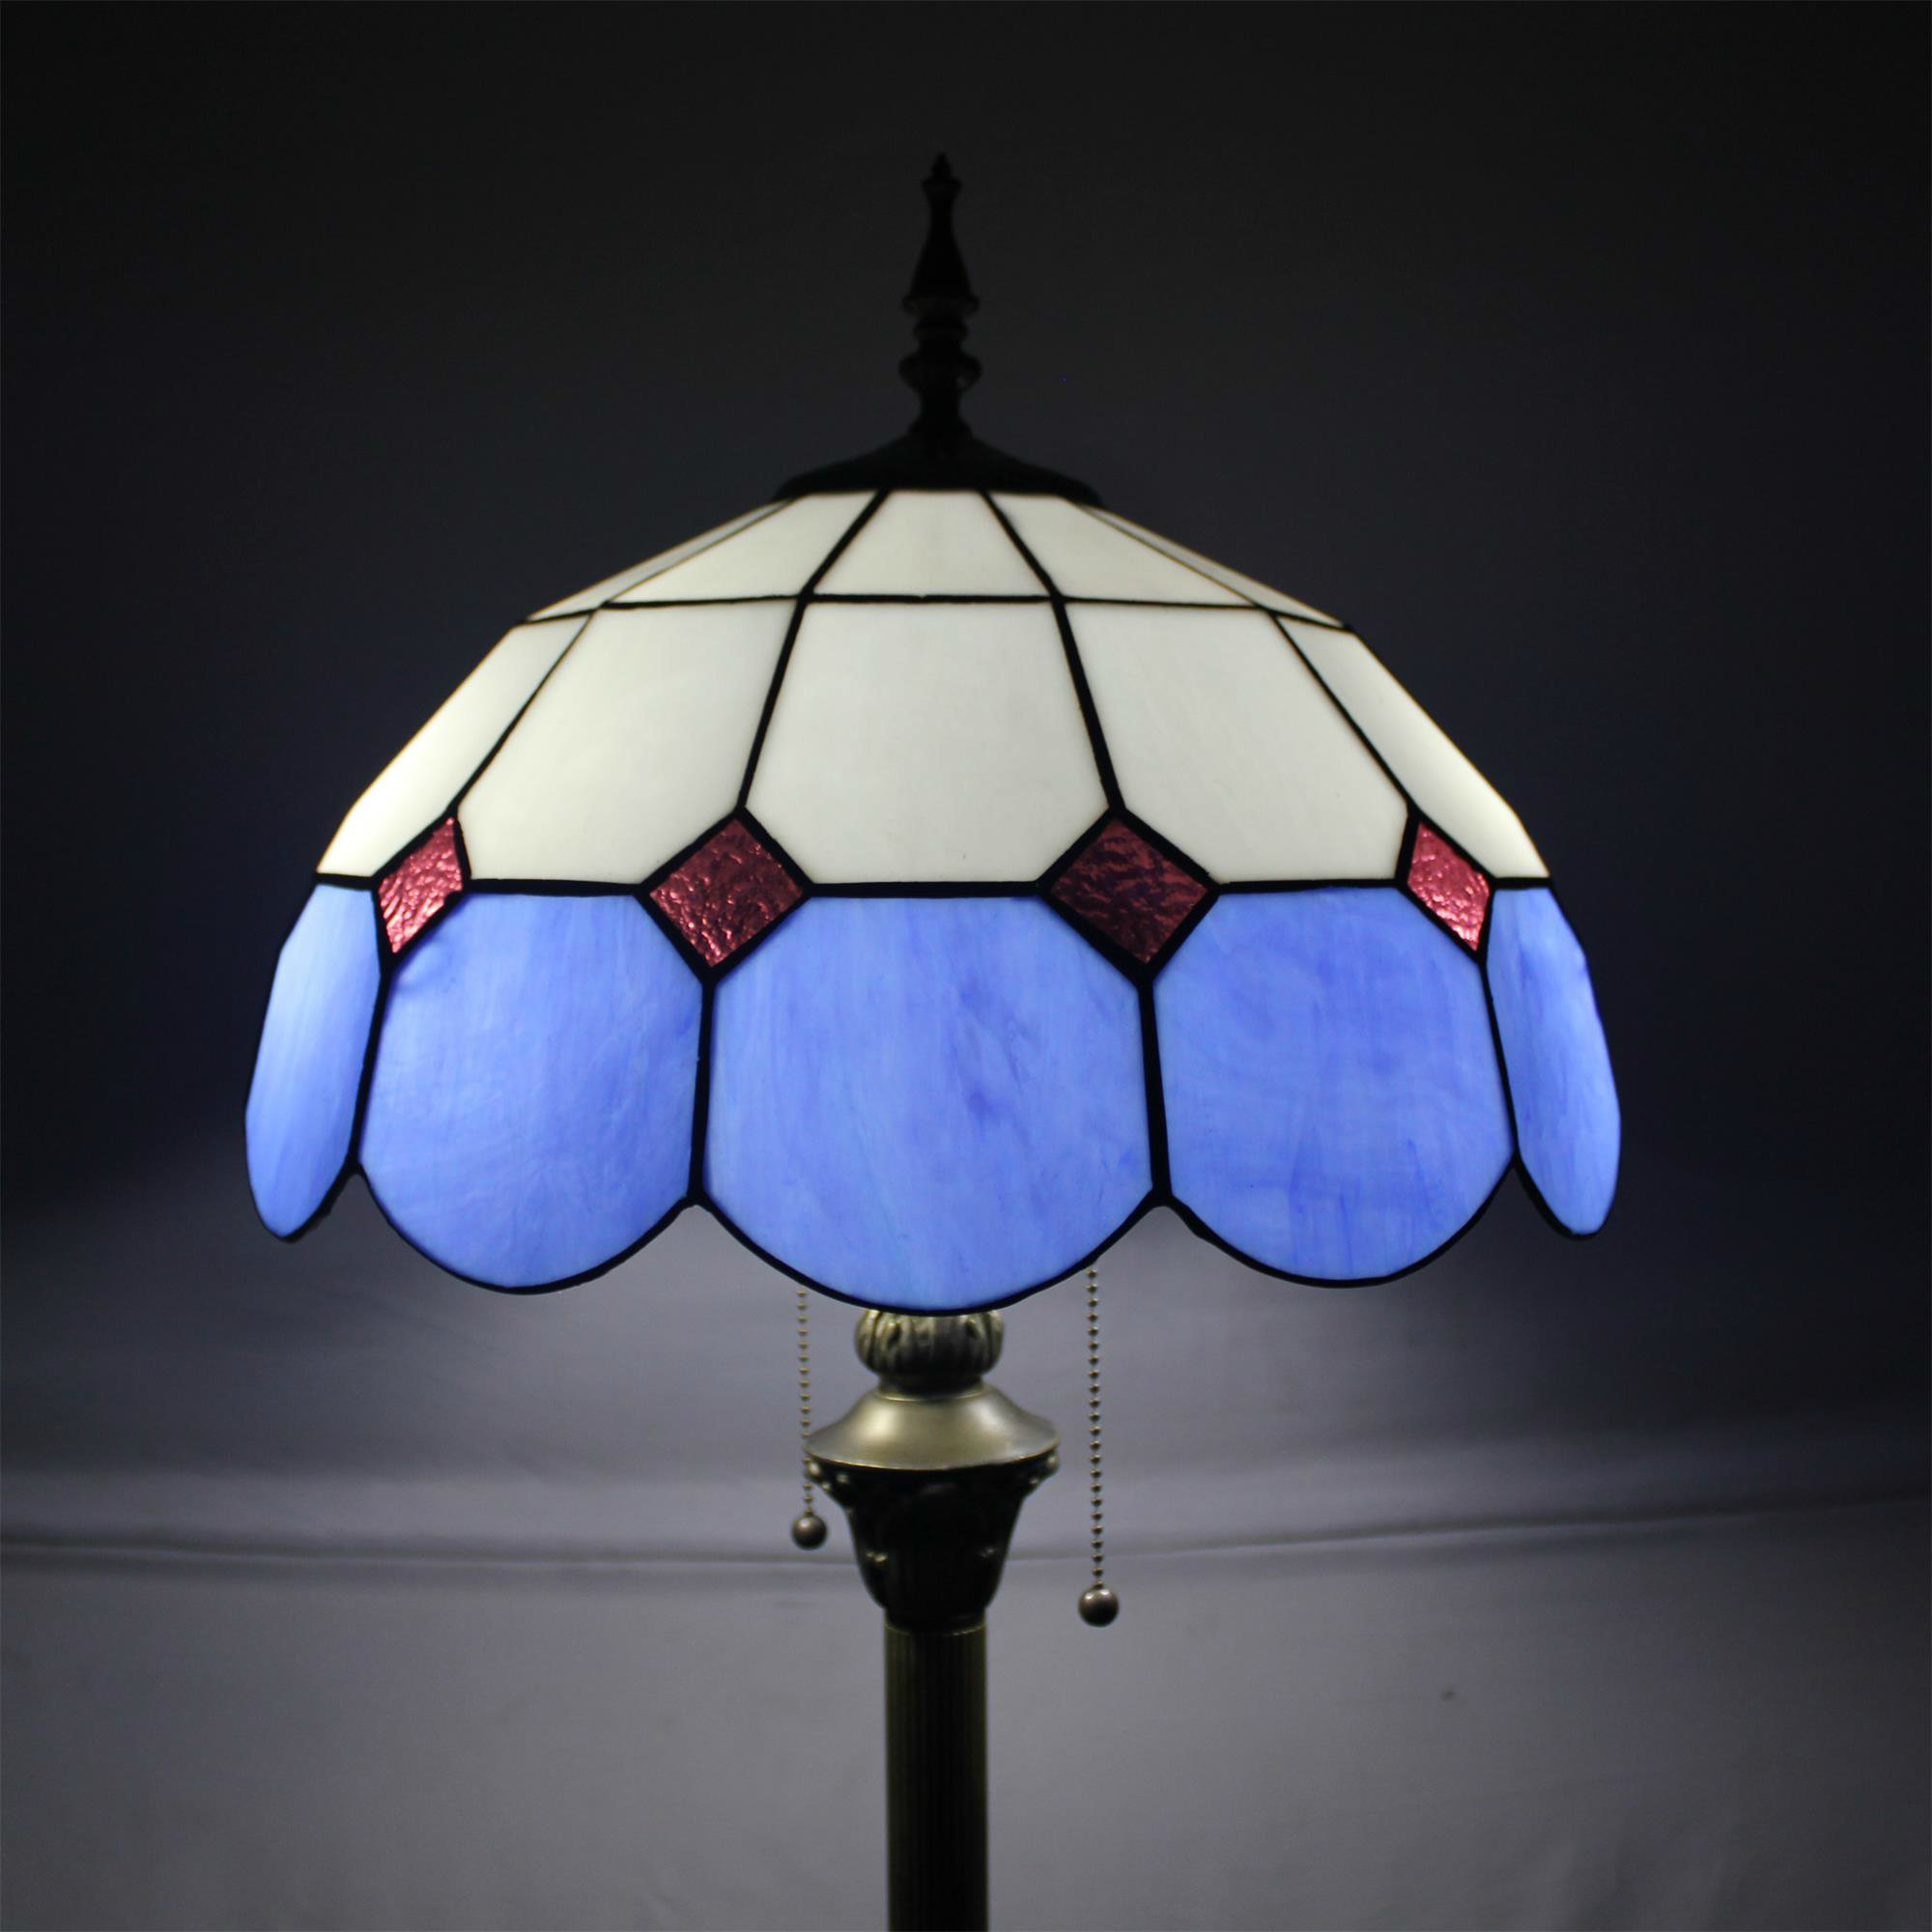 Tiffany 16-Inch Mediterranean European Pastoral Style Elegant Luxury Creative Handmade Stained Glass Tiffany Floor Lamp - Blue